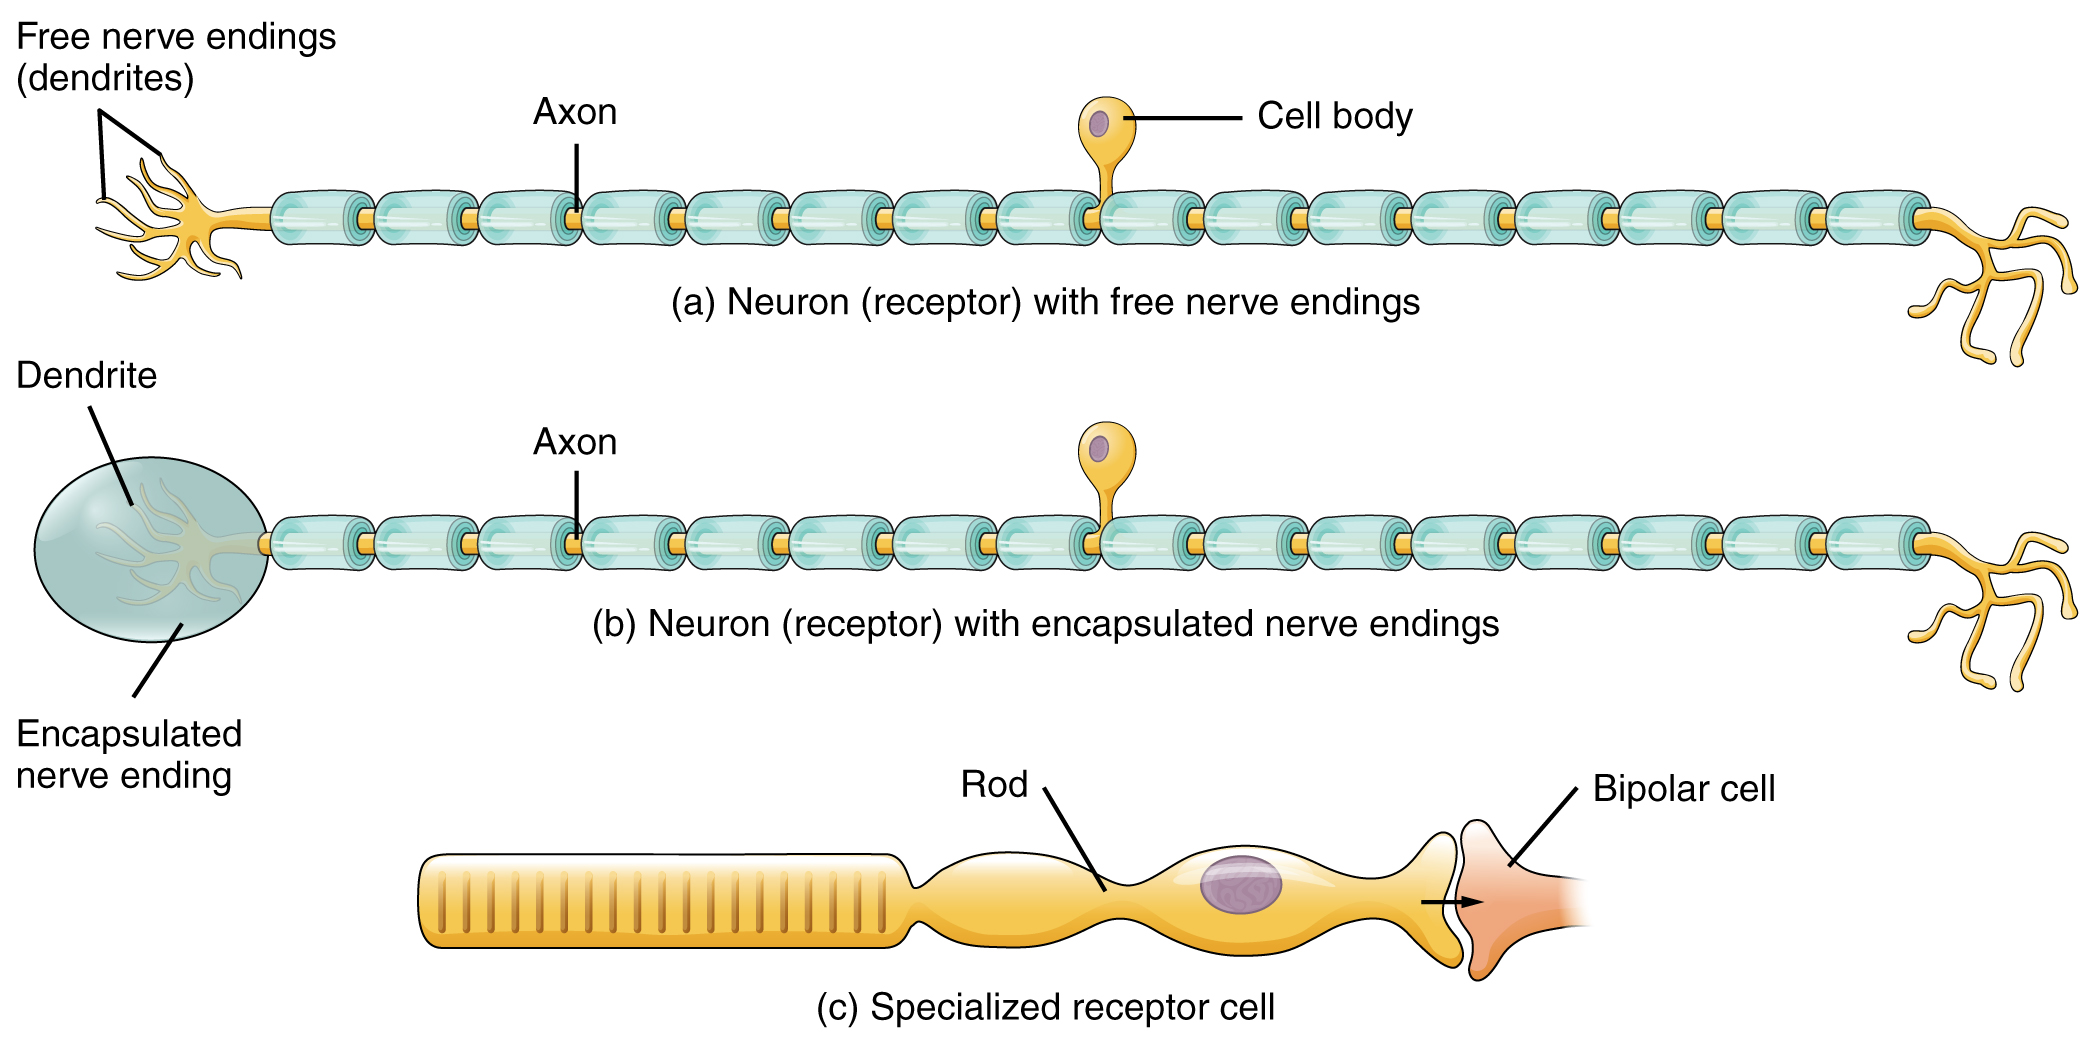 This figure shows the different types of receptors. The top panel shows a neuron receptor with free receptor endings, the middle panel shows a neuron receptor with encapsulated nerve endings, and the bottom panel shows a specialized receptor cell.